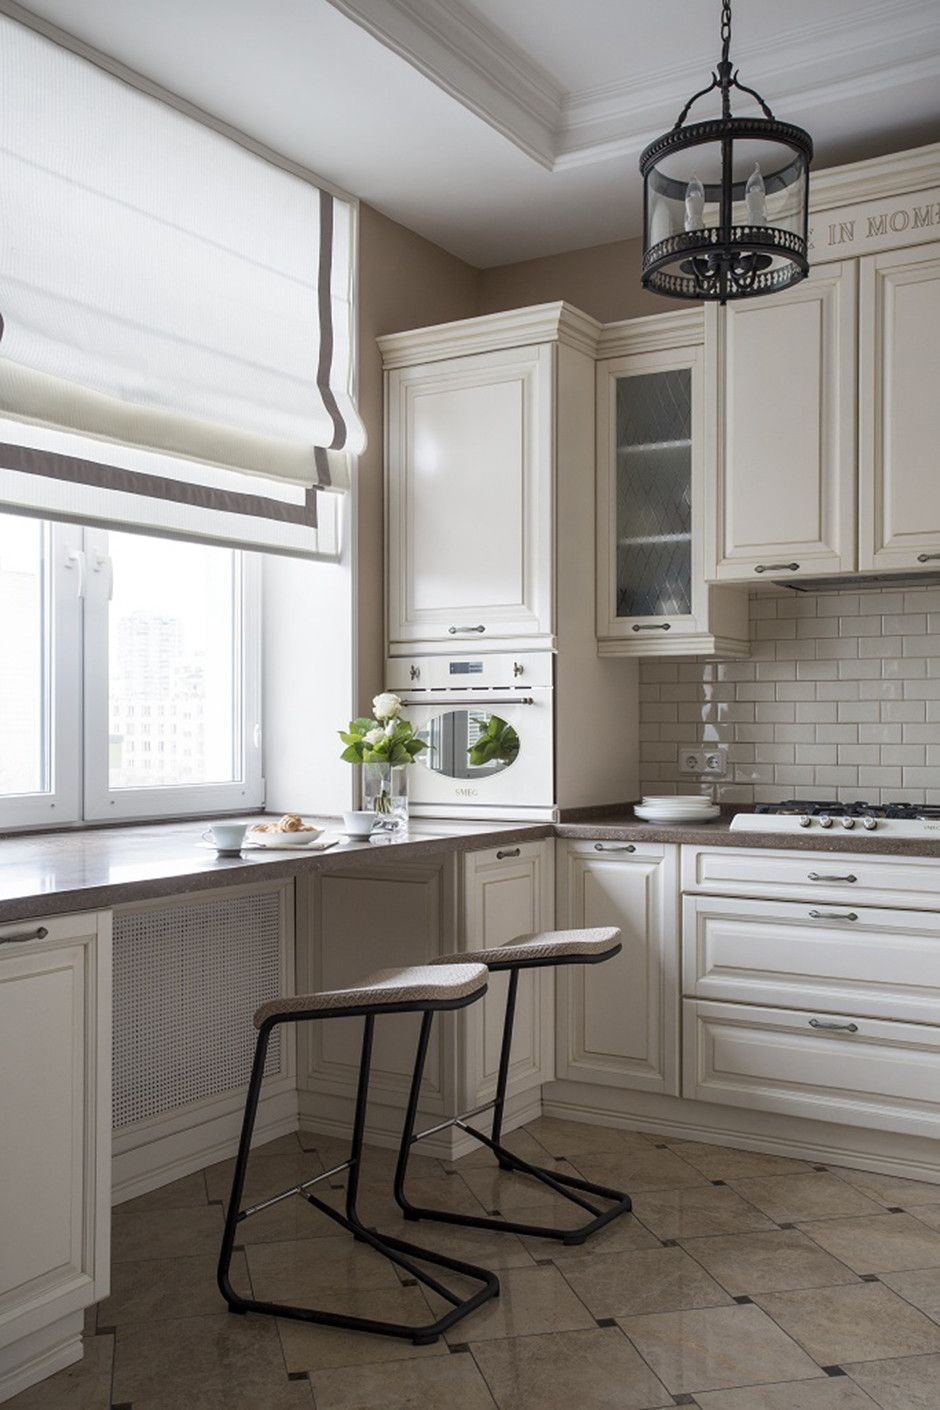 30 Designs Perfect for Your Small Kitchen area #kitchenplannerikea #kitchenhood #kitchenknifeset #kitchenknivesset #kitchenislandtable #smallkitchenremodeling